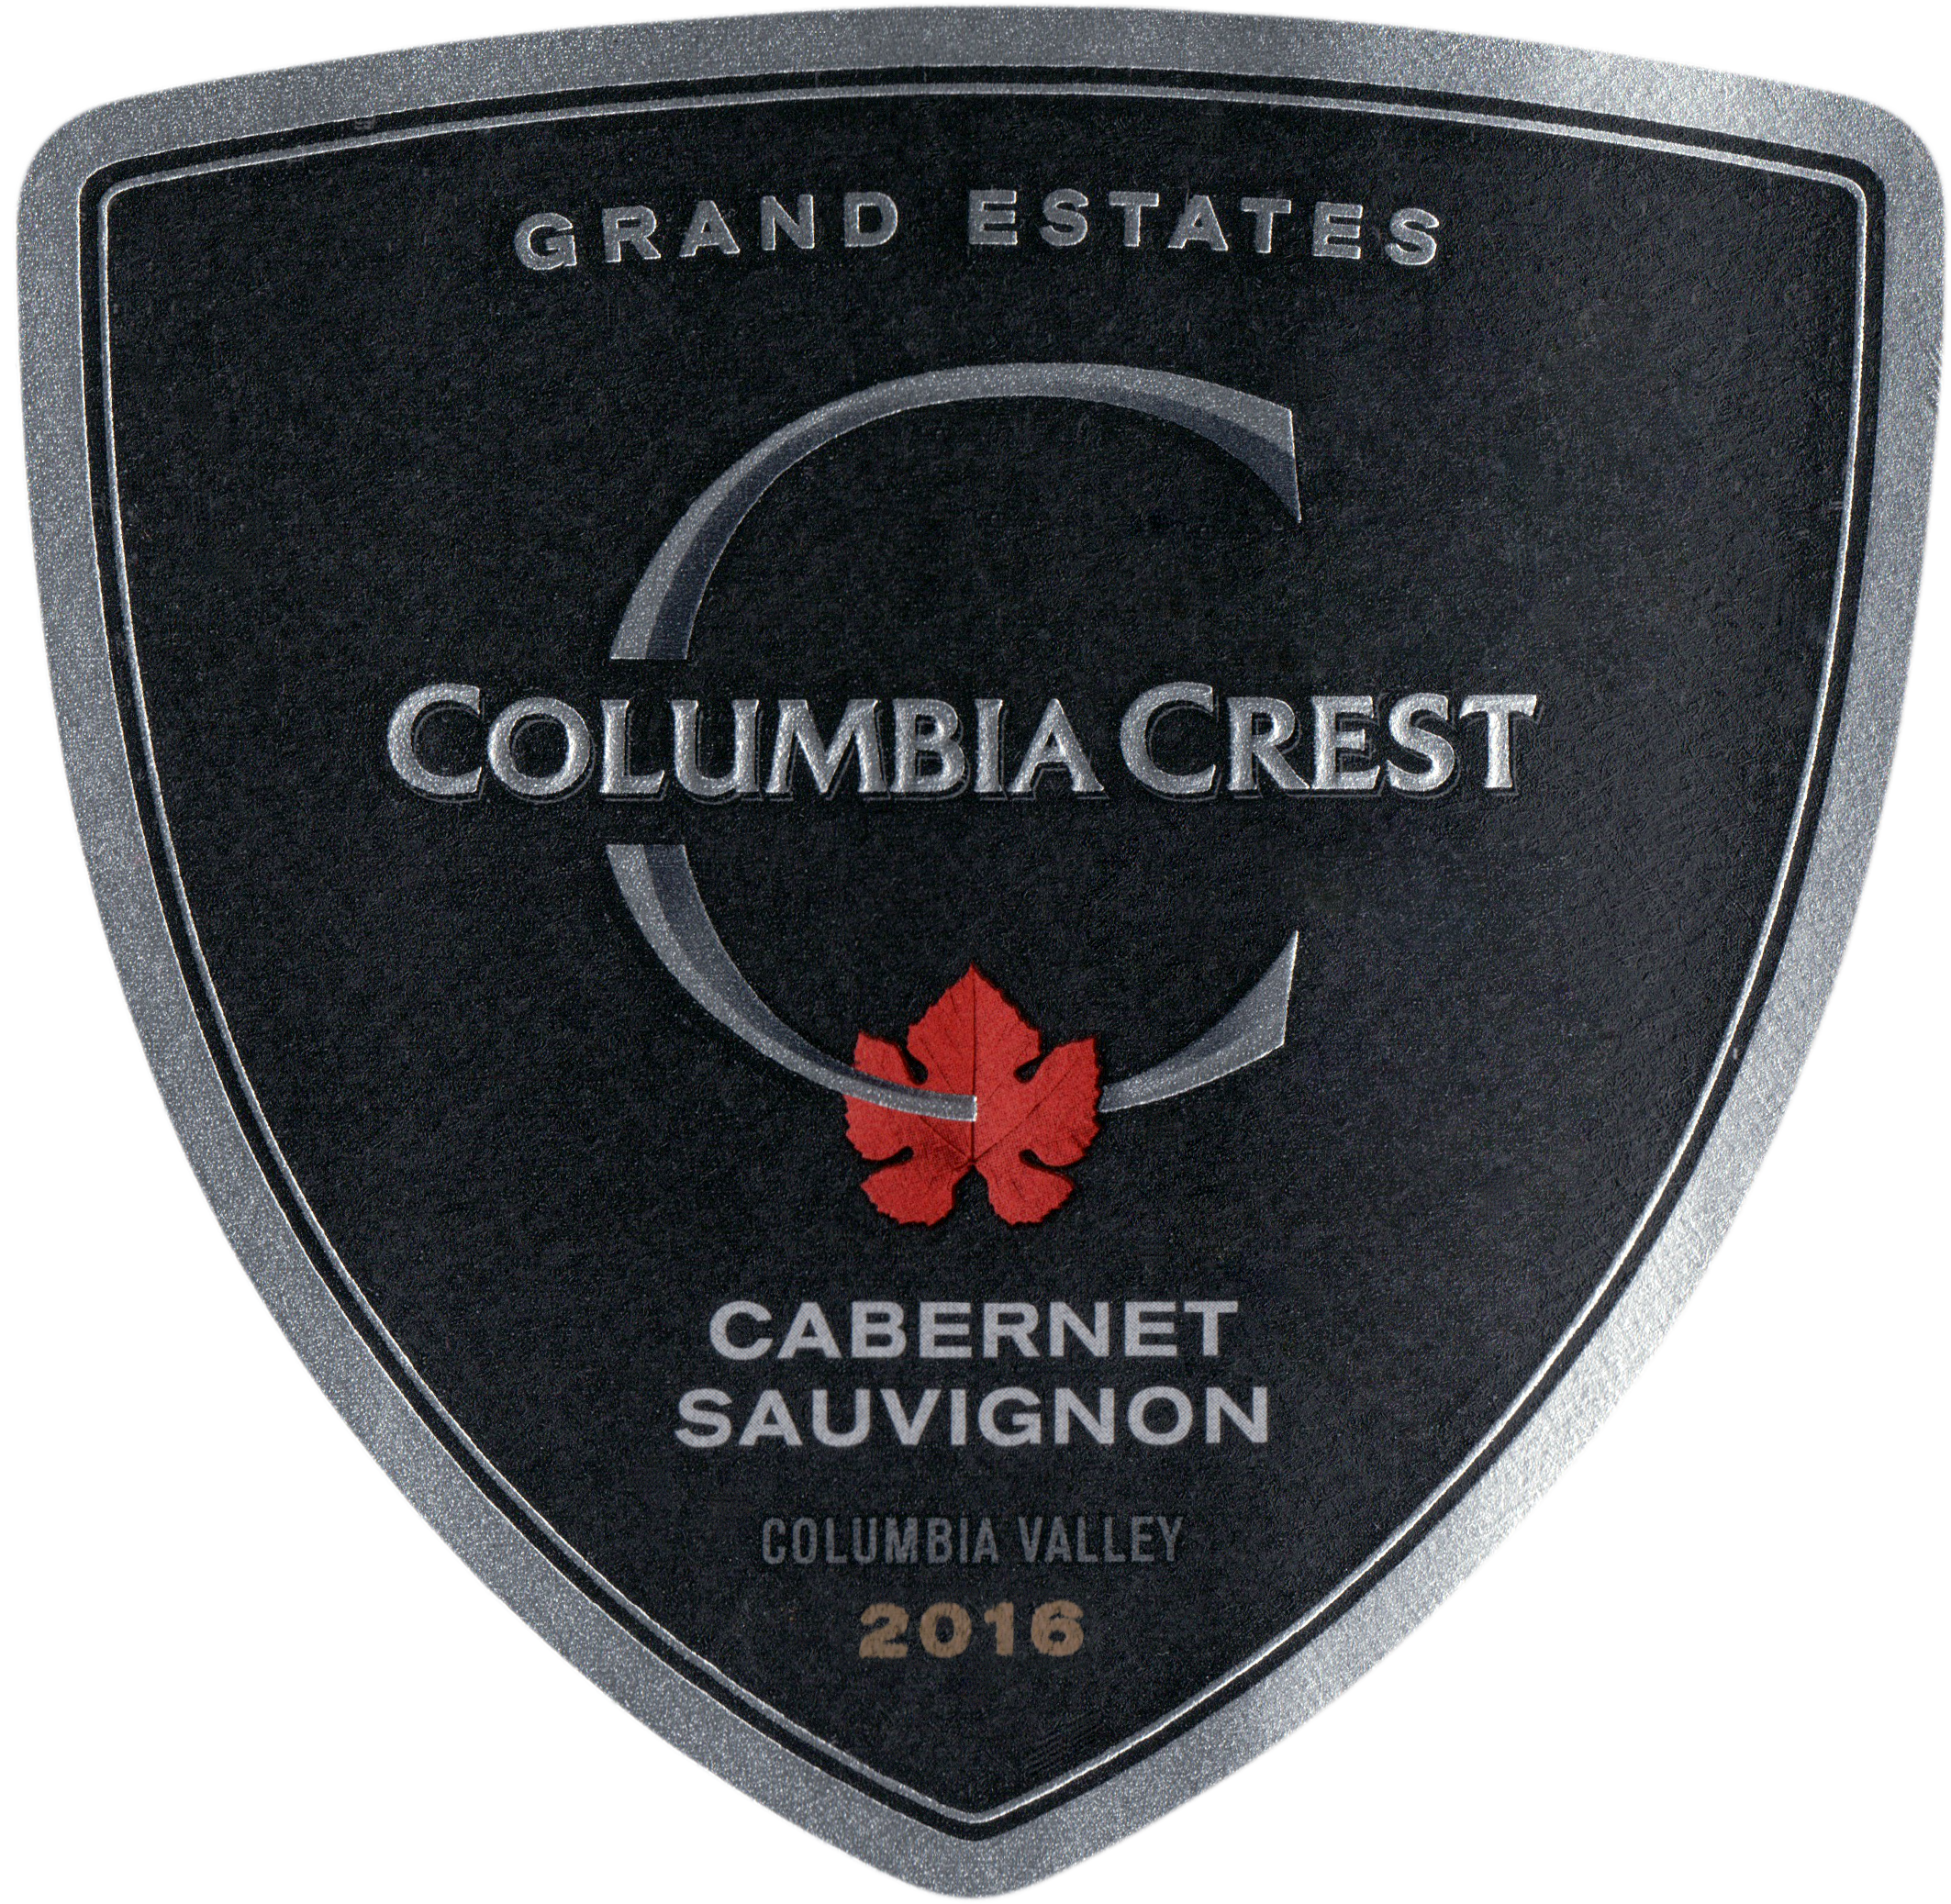 Columbia Crest Grand Estate Cabernet Sauvignon 2016